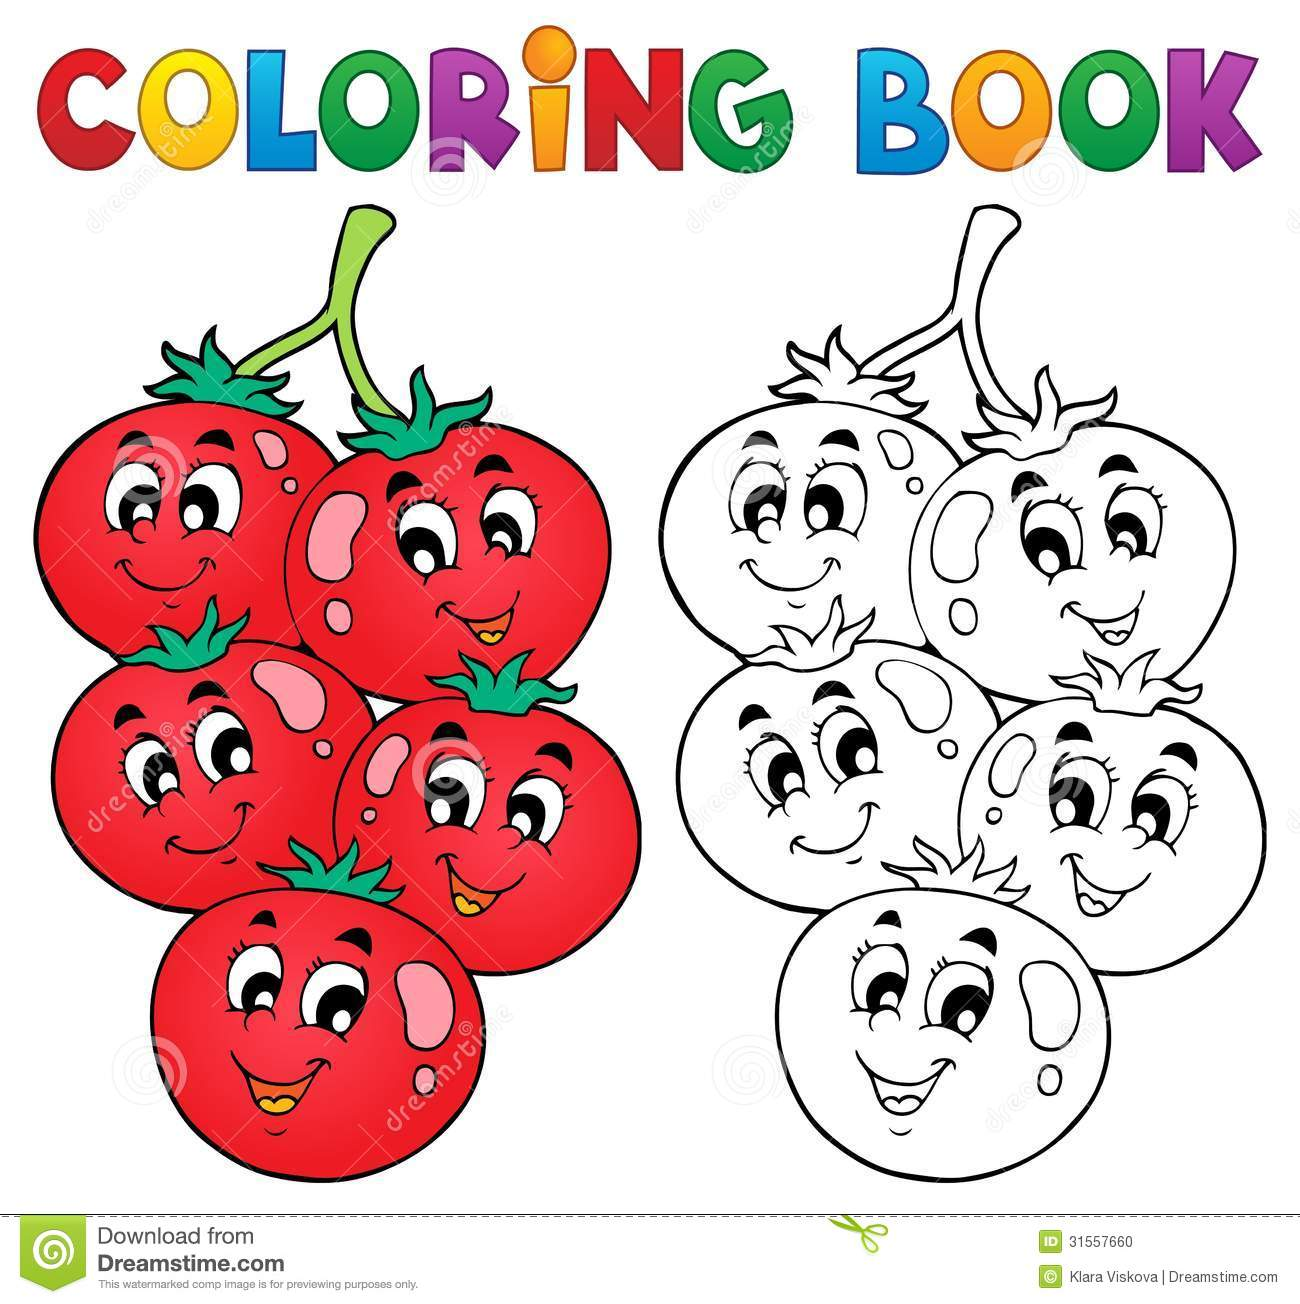 Coloring Book Vegetable Theme 3 Stock Vector - Illustration of ...